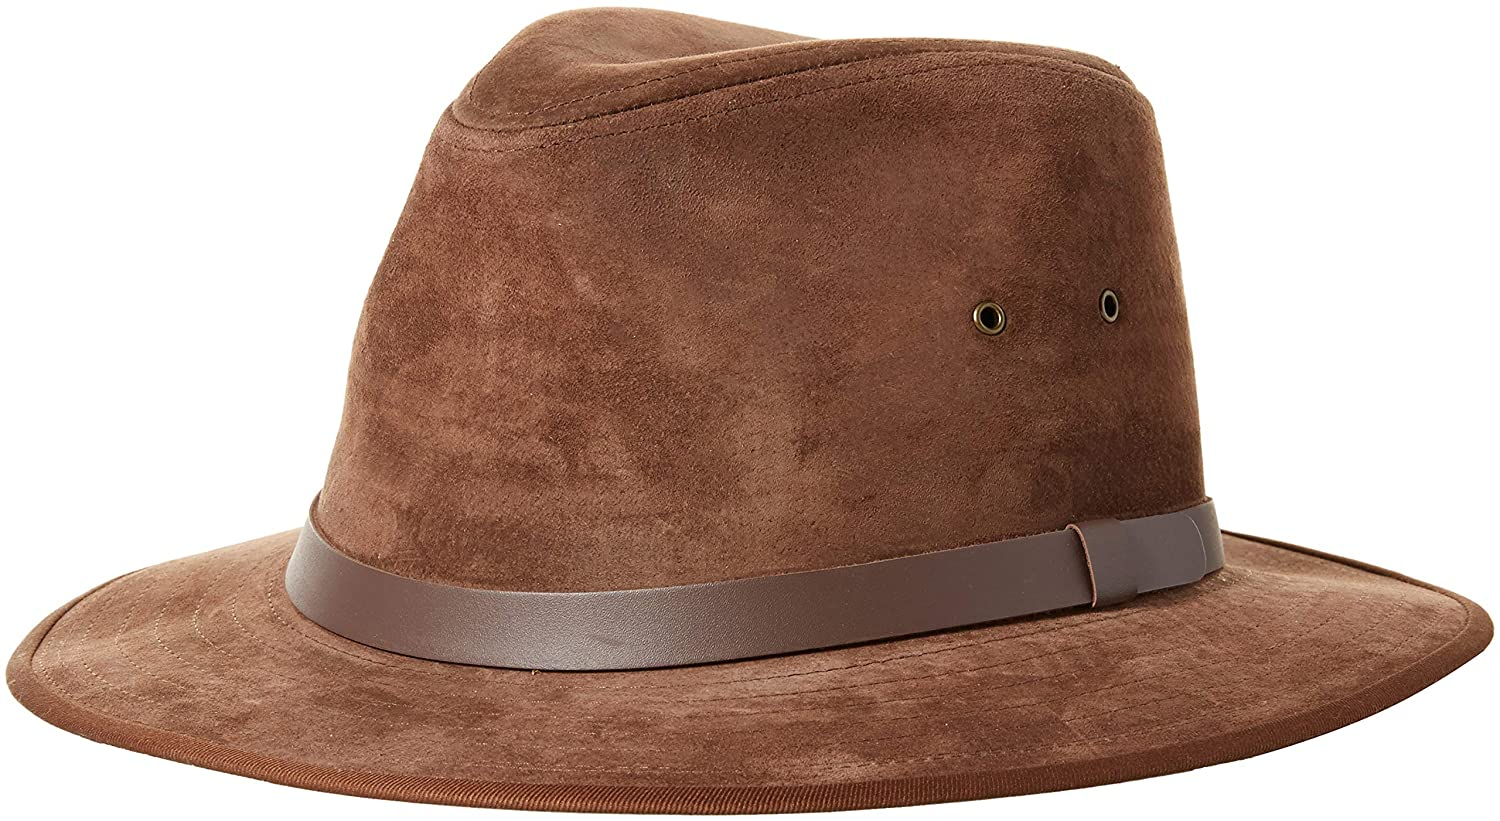 92d163c919b Amazon.com   Henschel Genuine Suede Safari with Leather Band   Sports    Outdoors